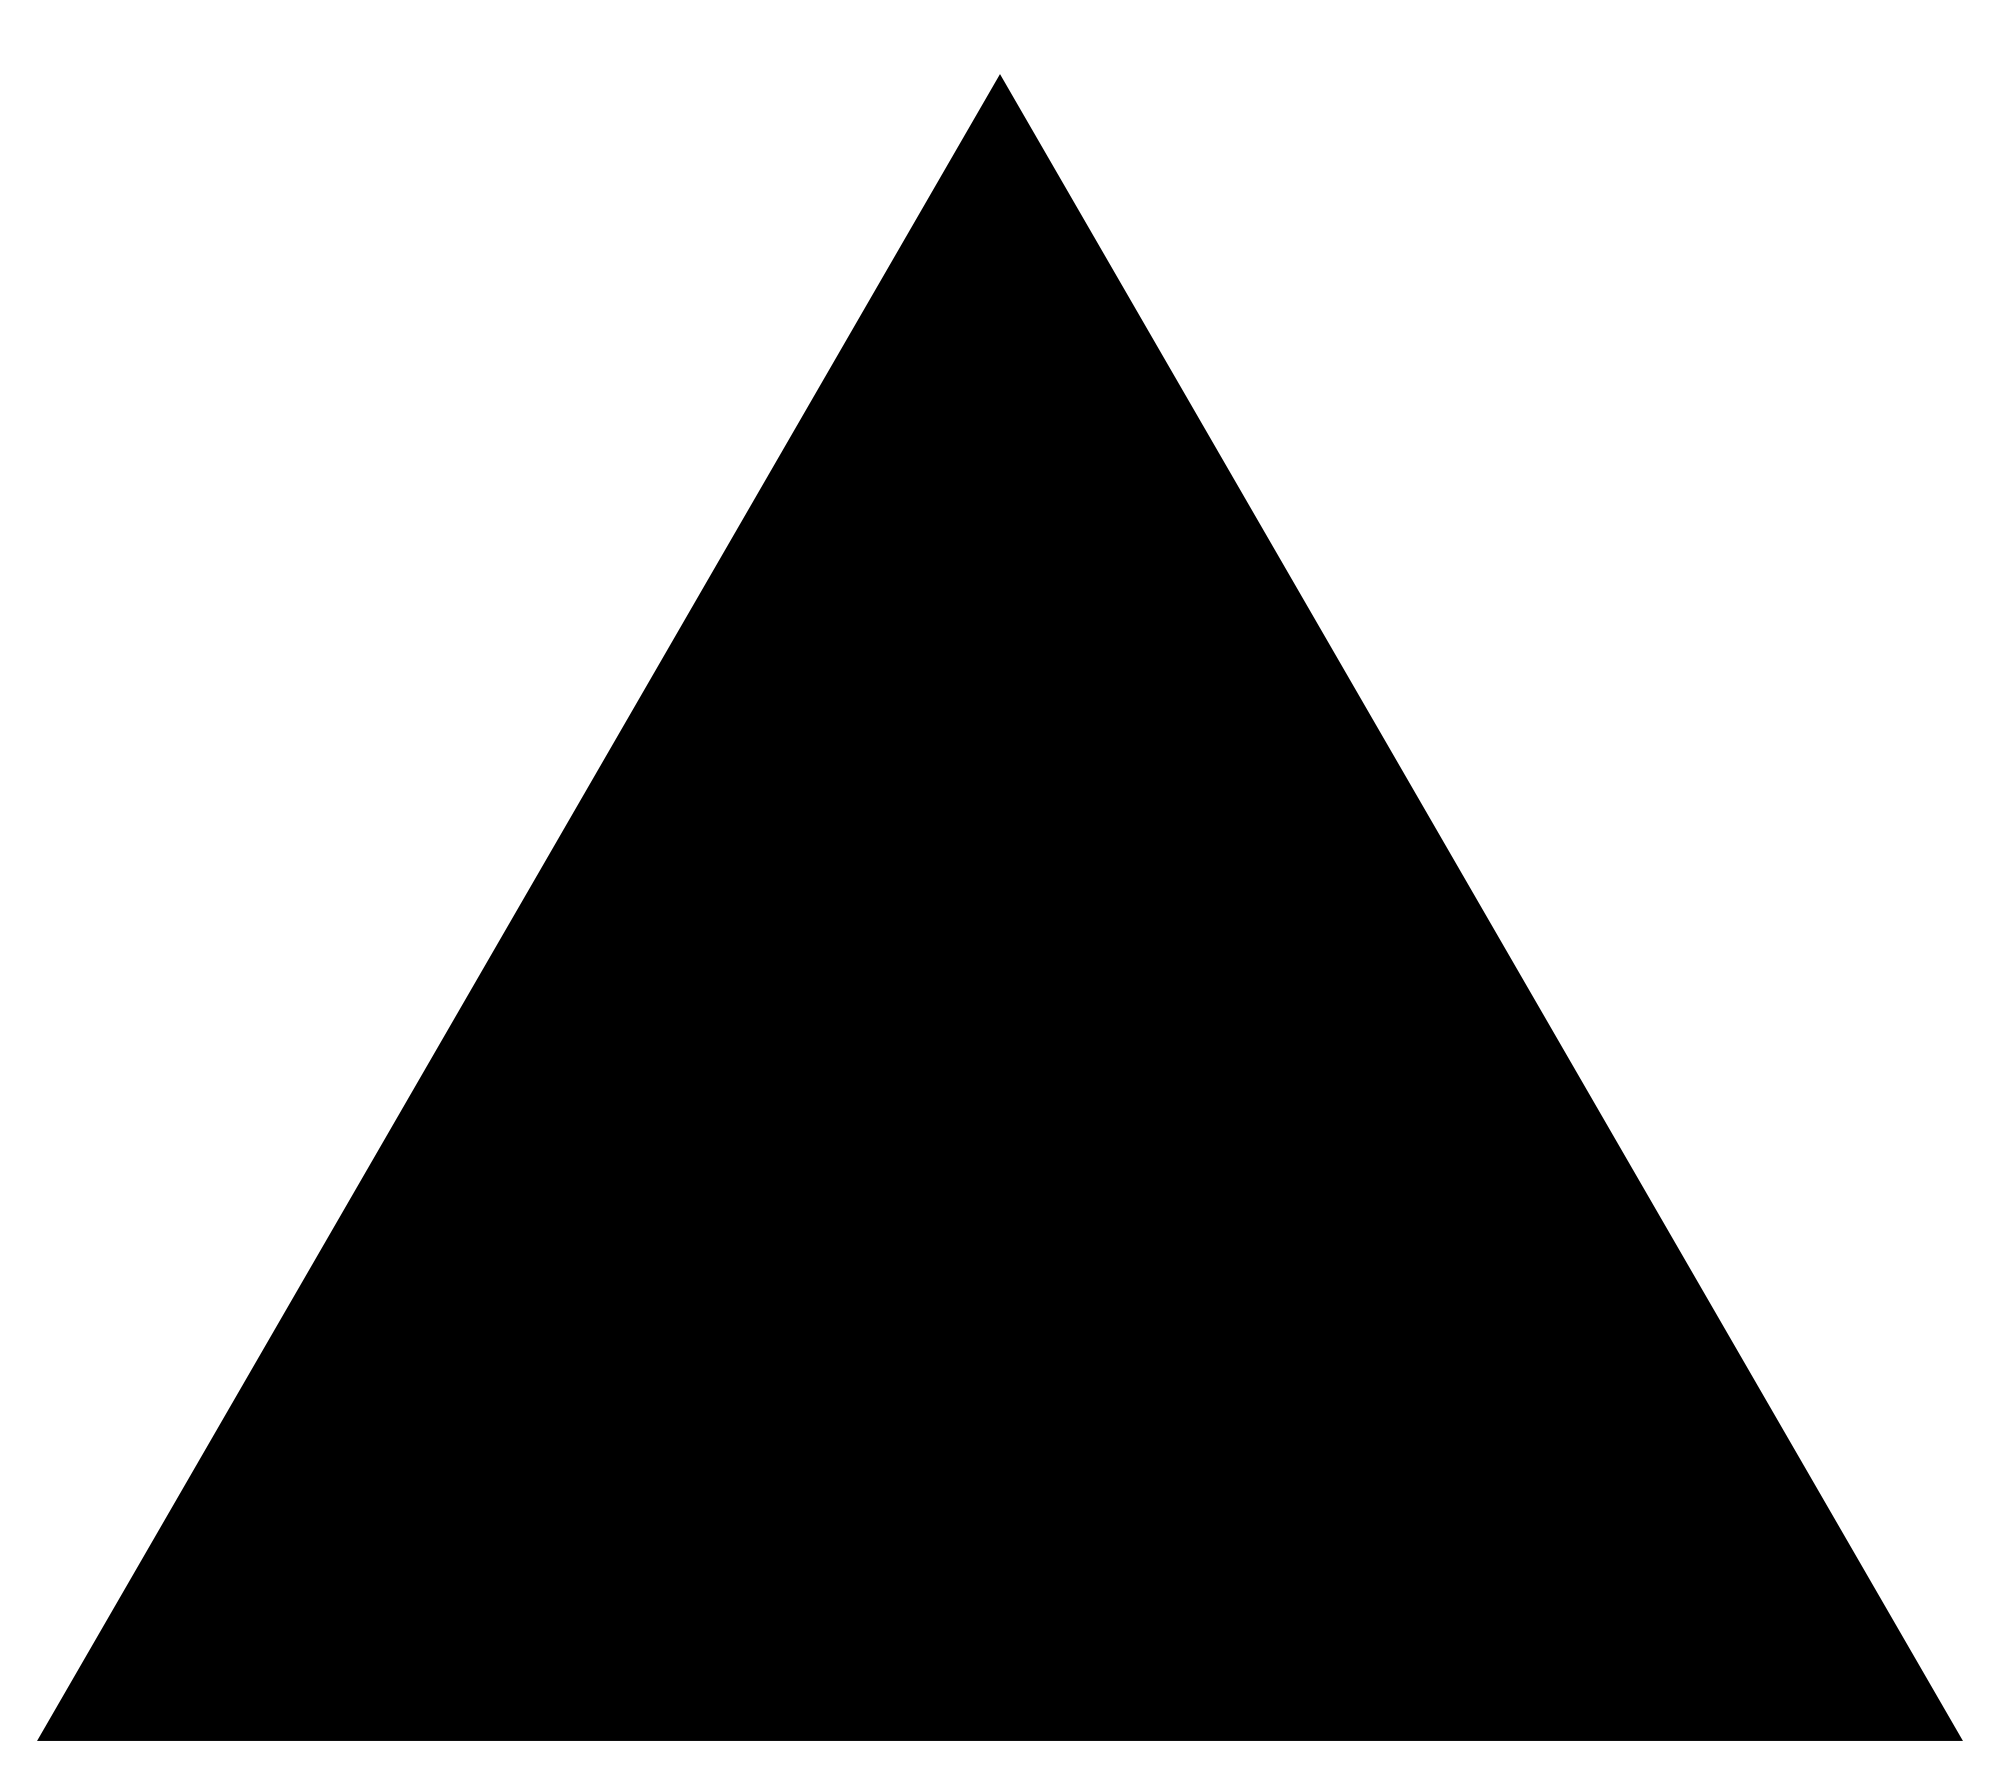 Inverted Triangle Symbol Meaning